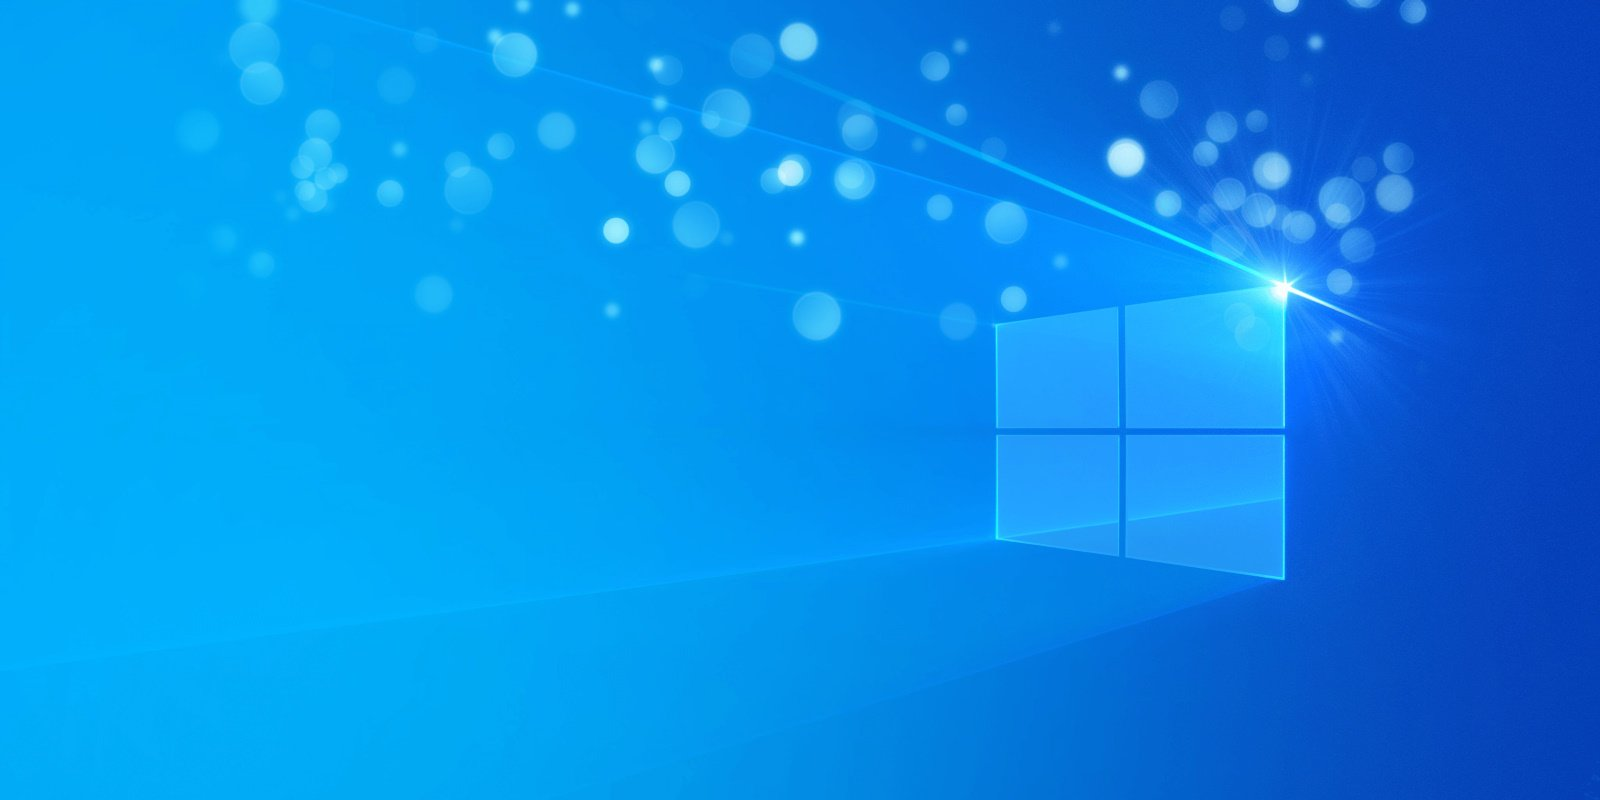 Download and Install Windows 10 for free